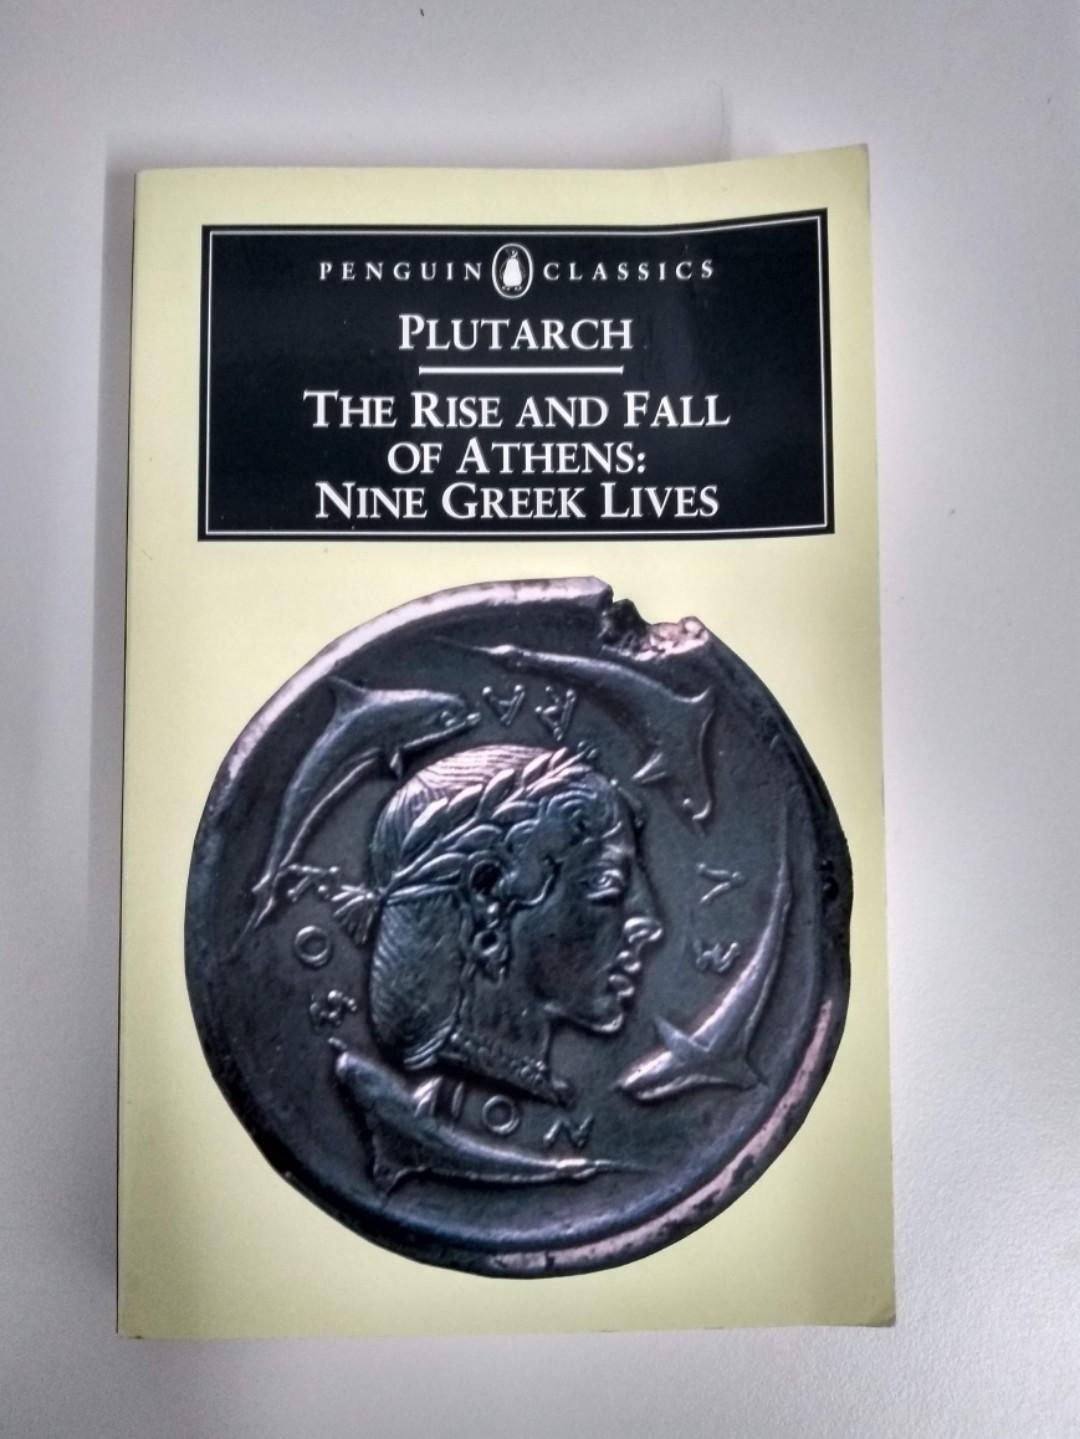 The Rise and Fall of Athens: Nine Greek Lives – Plutarch (Ancient History)